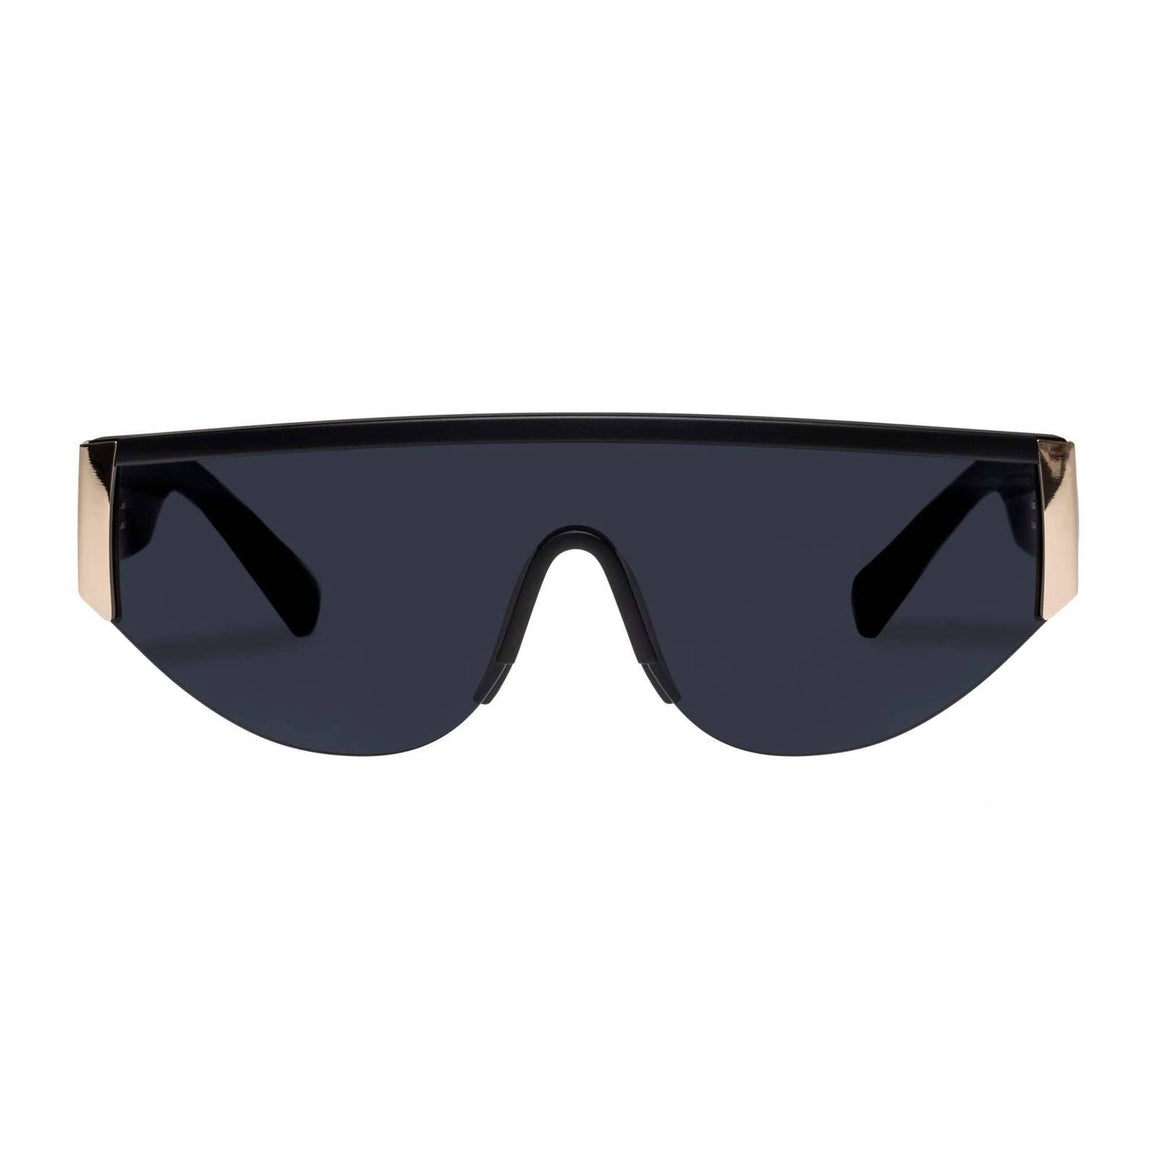 Viper - Matte Black Gold shop online or in store at Wallace&Gibbs